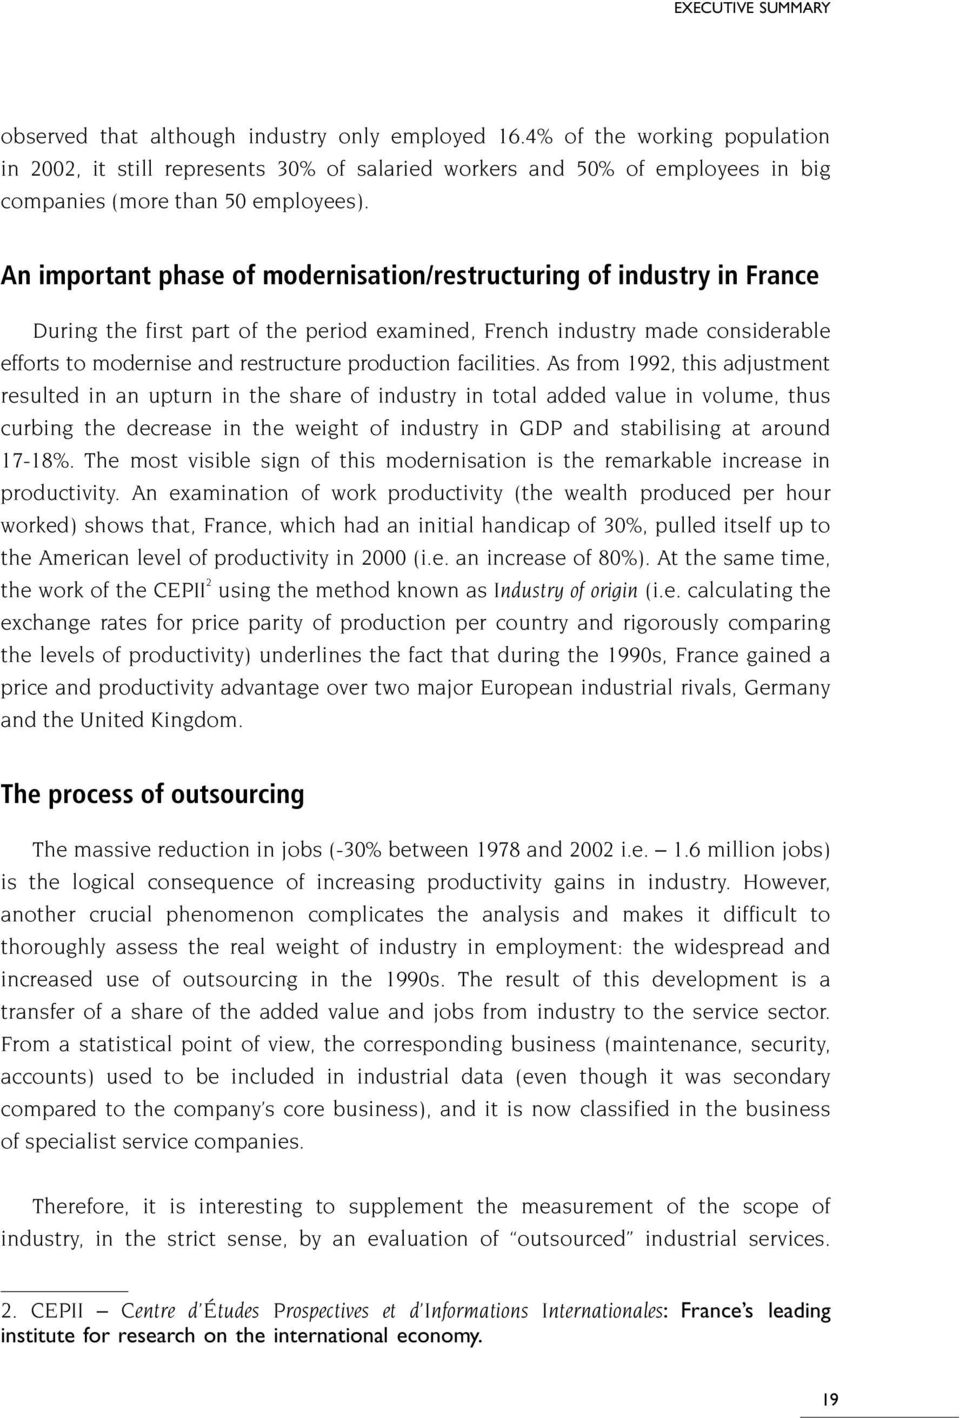 An important phase of modernisation/restructuring of industry in France During the first part of the period examined, French industry made considerable efforts to modernise and restructure production